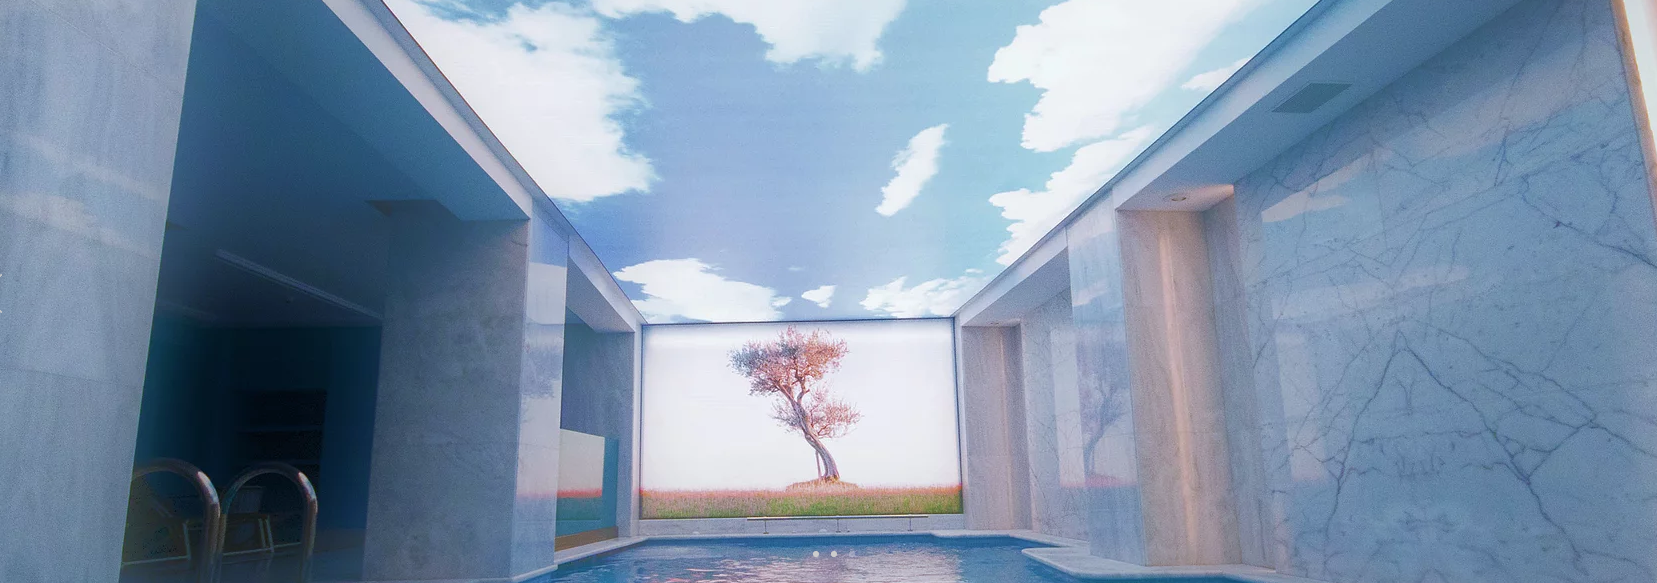 Sky printed in swimming pool stretch ceiling